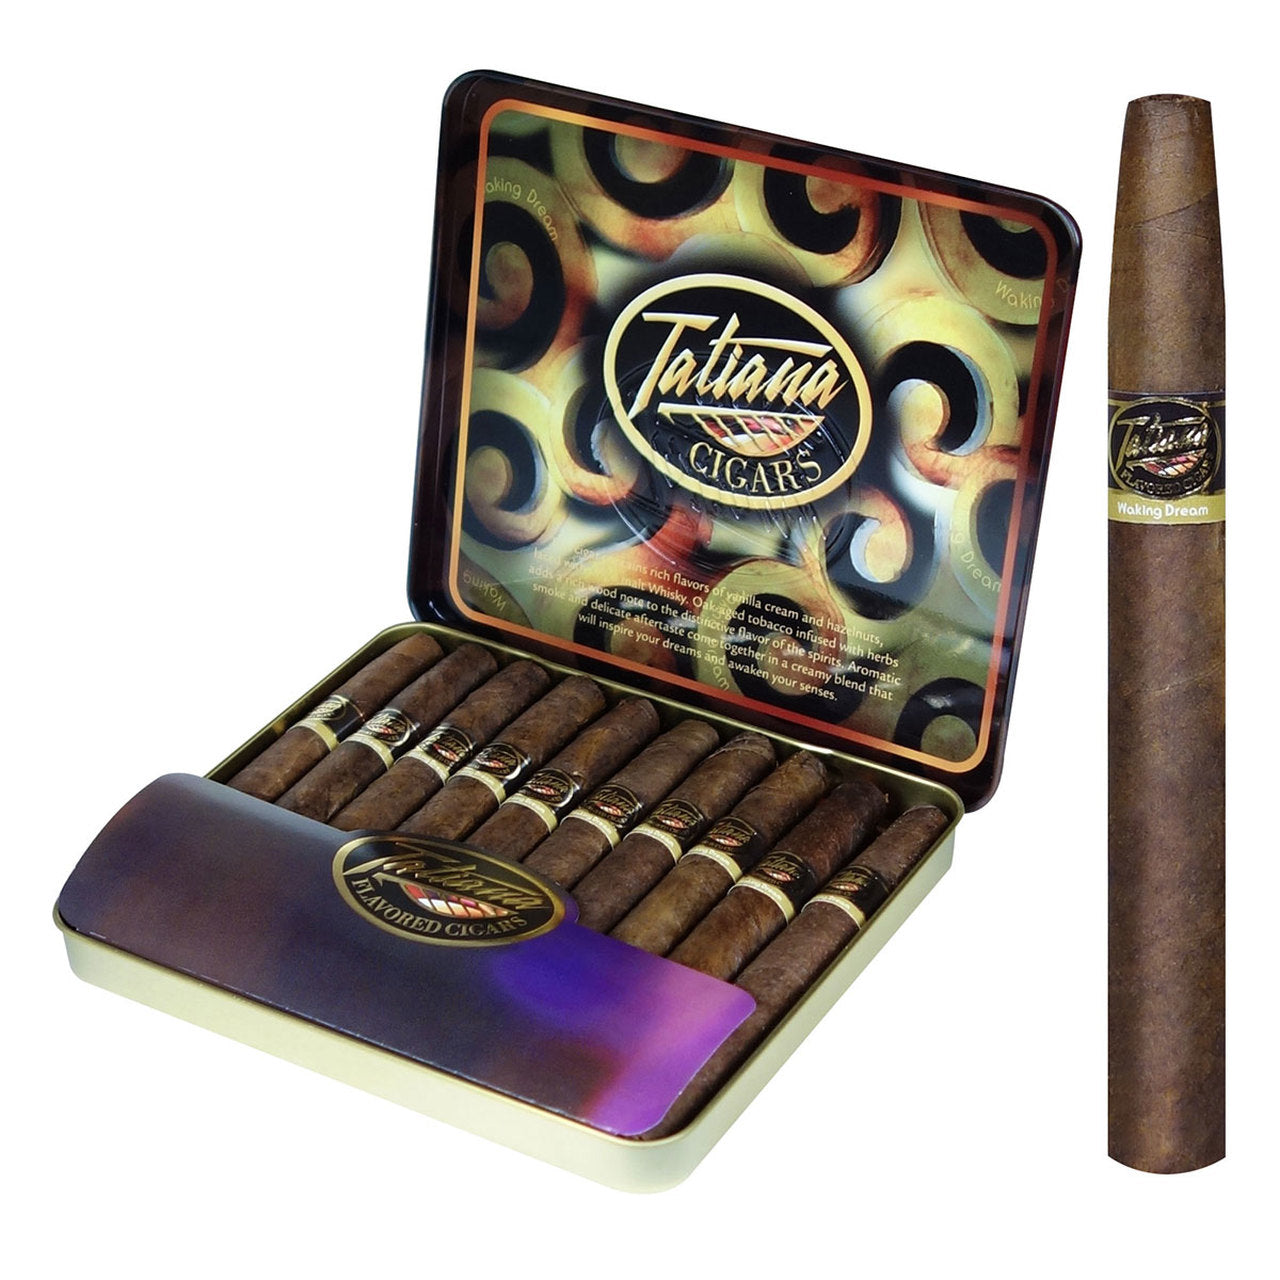 Tatiana Waking Dream - Cigar boulevard